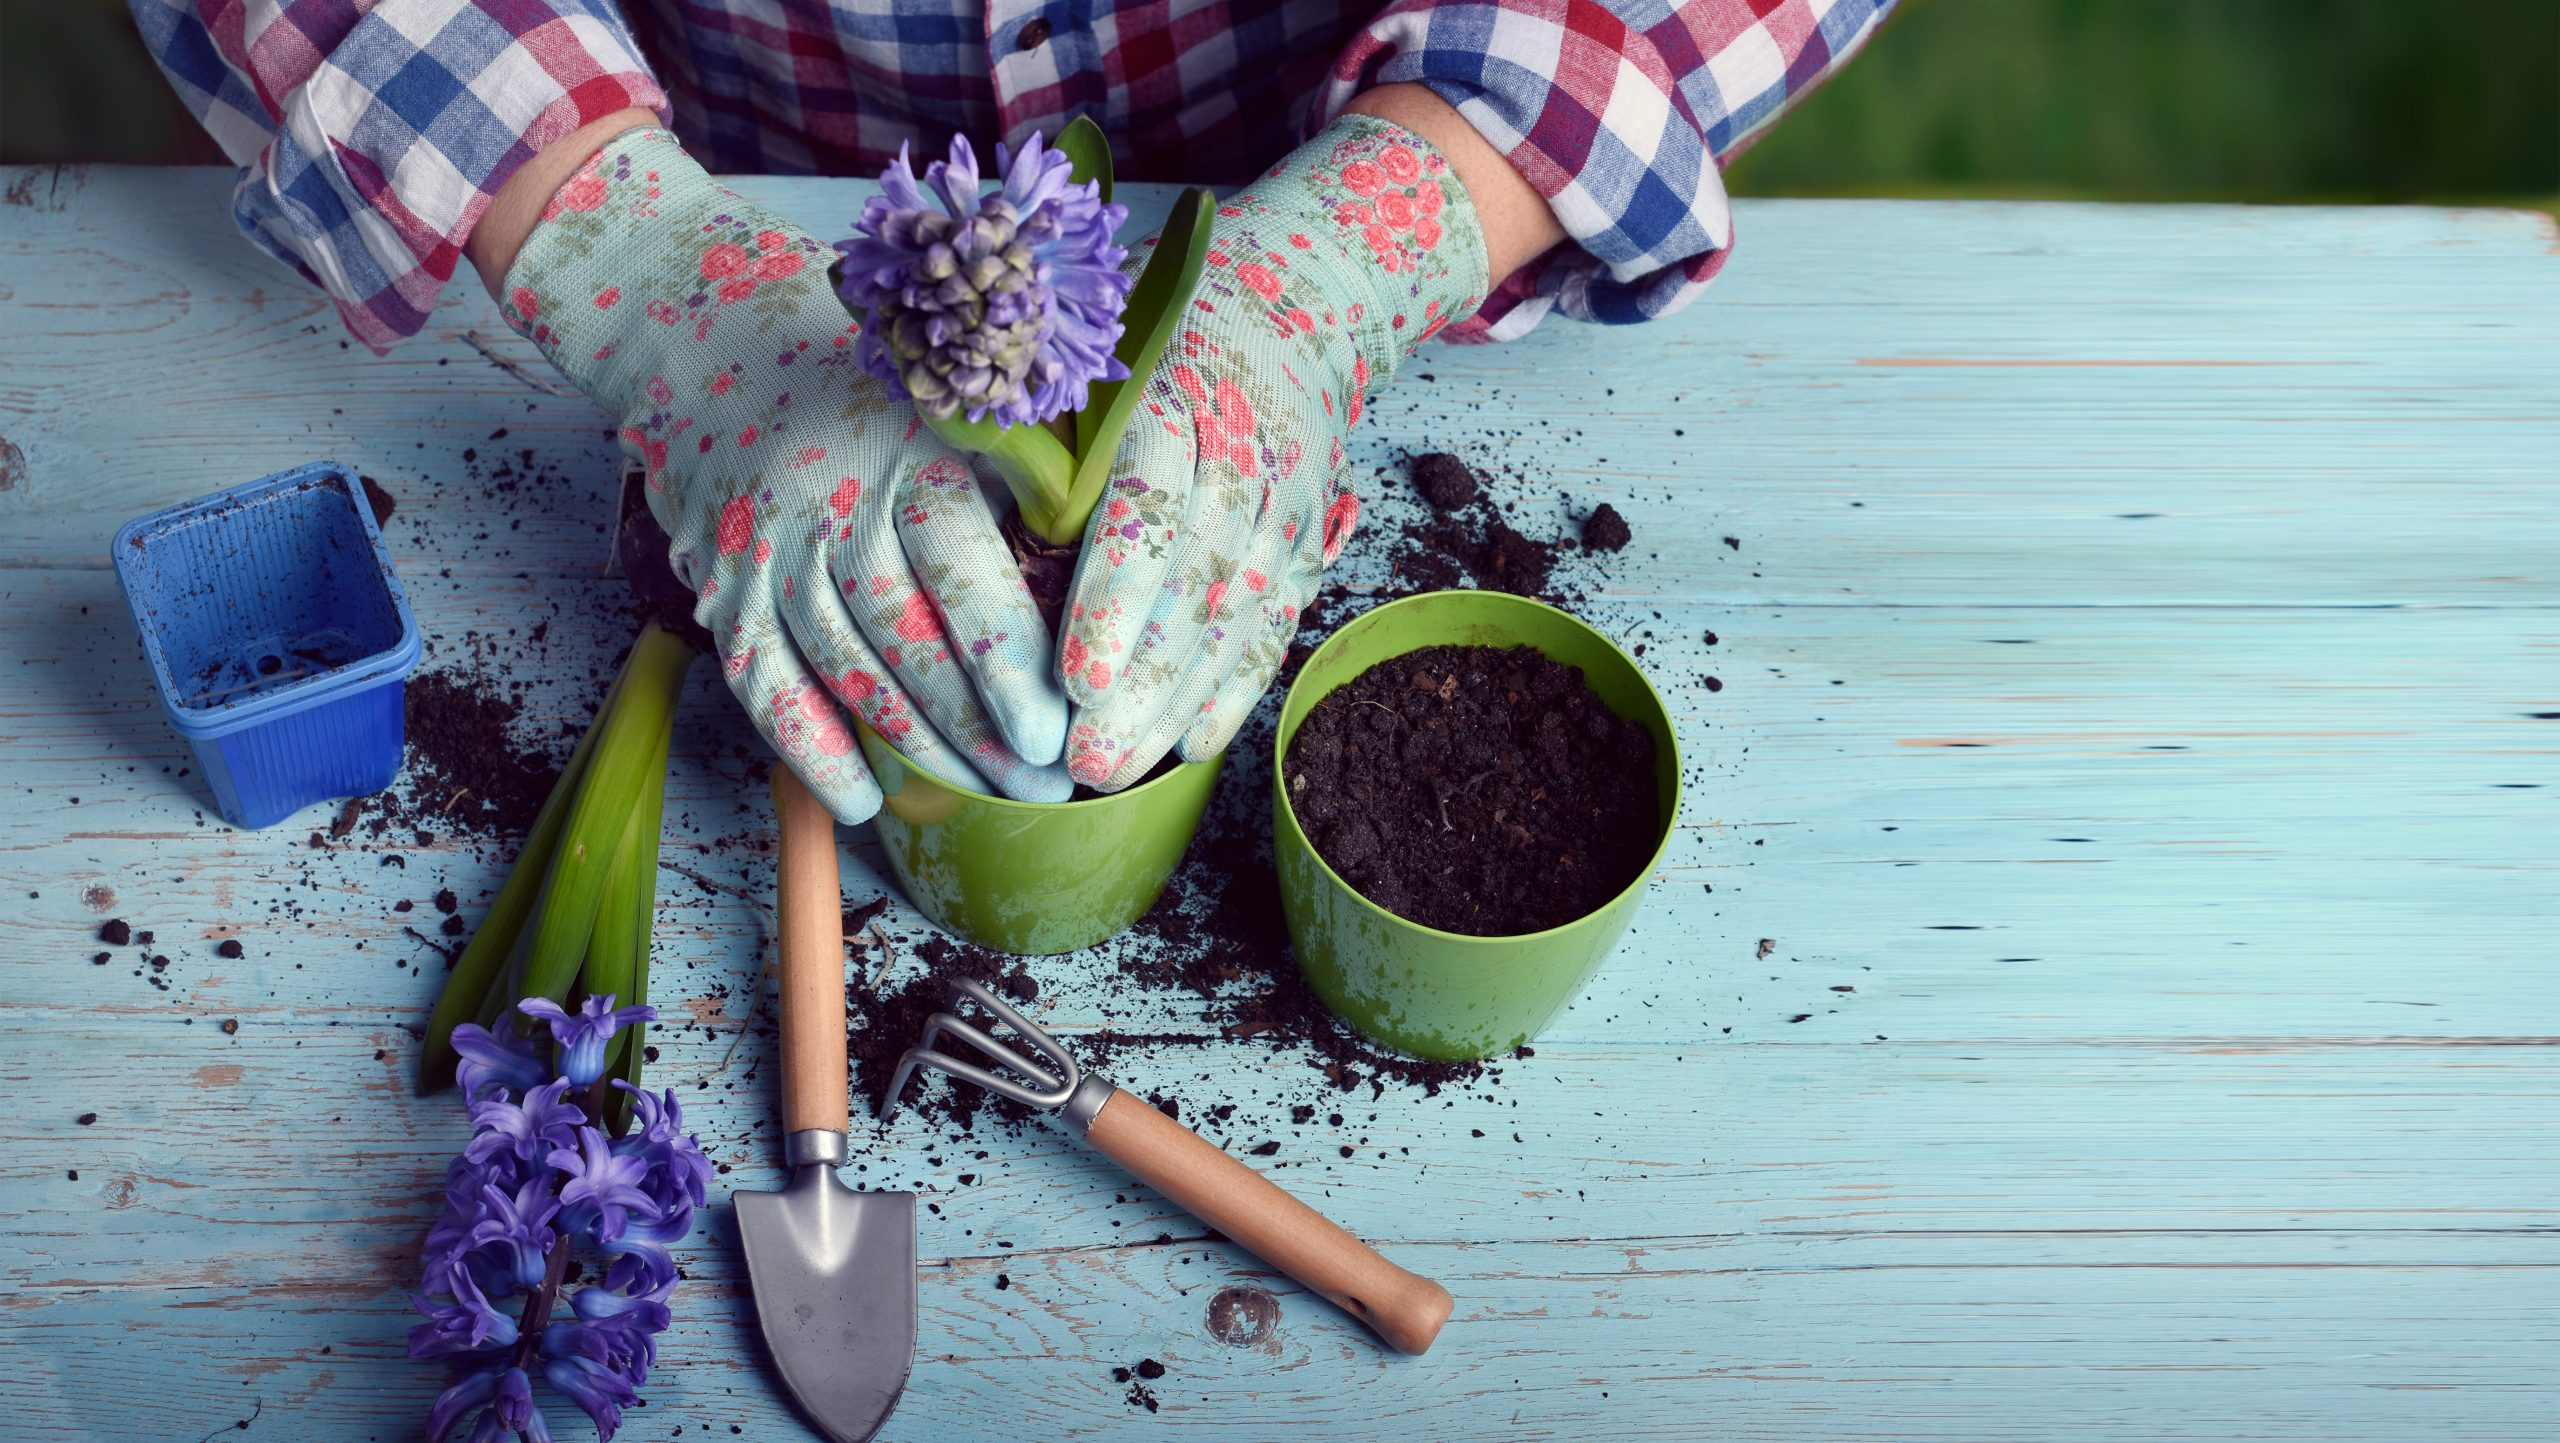 person transplanting flower out of pot